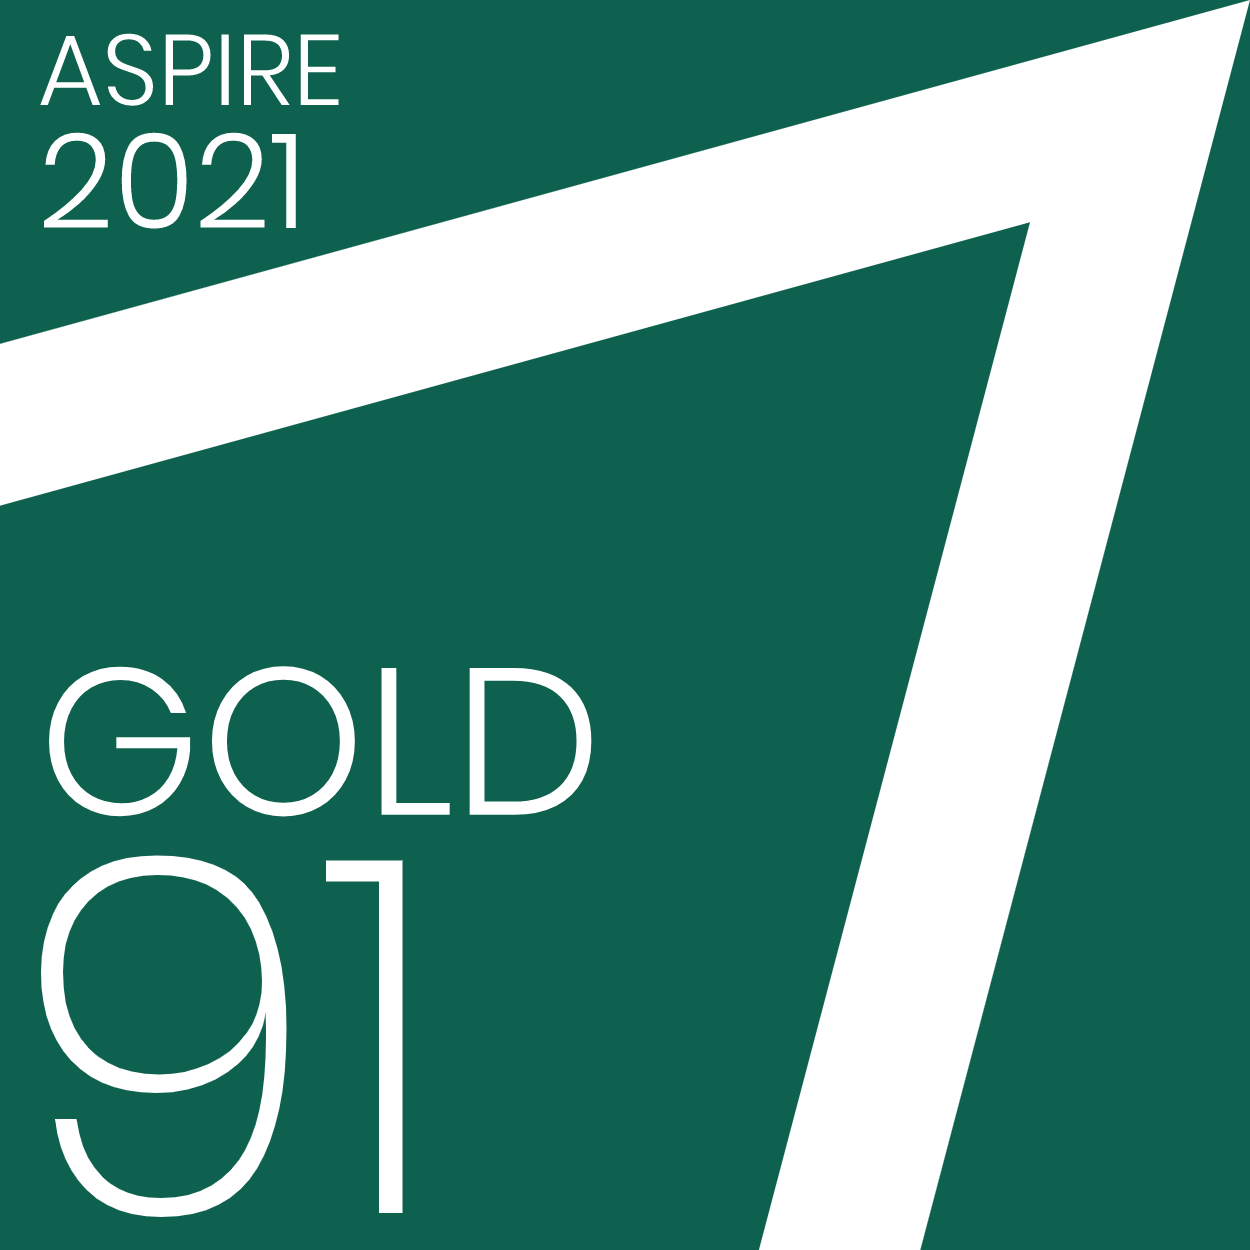 Perlego has been verified by ASPIRE with a gold-rated score of 91%